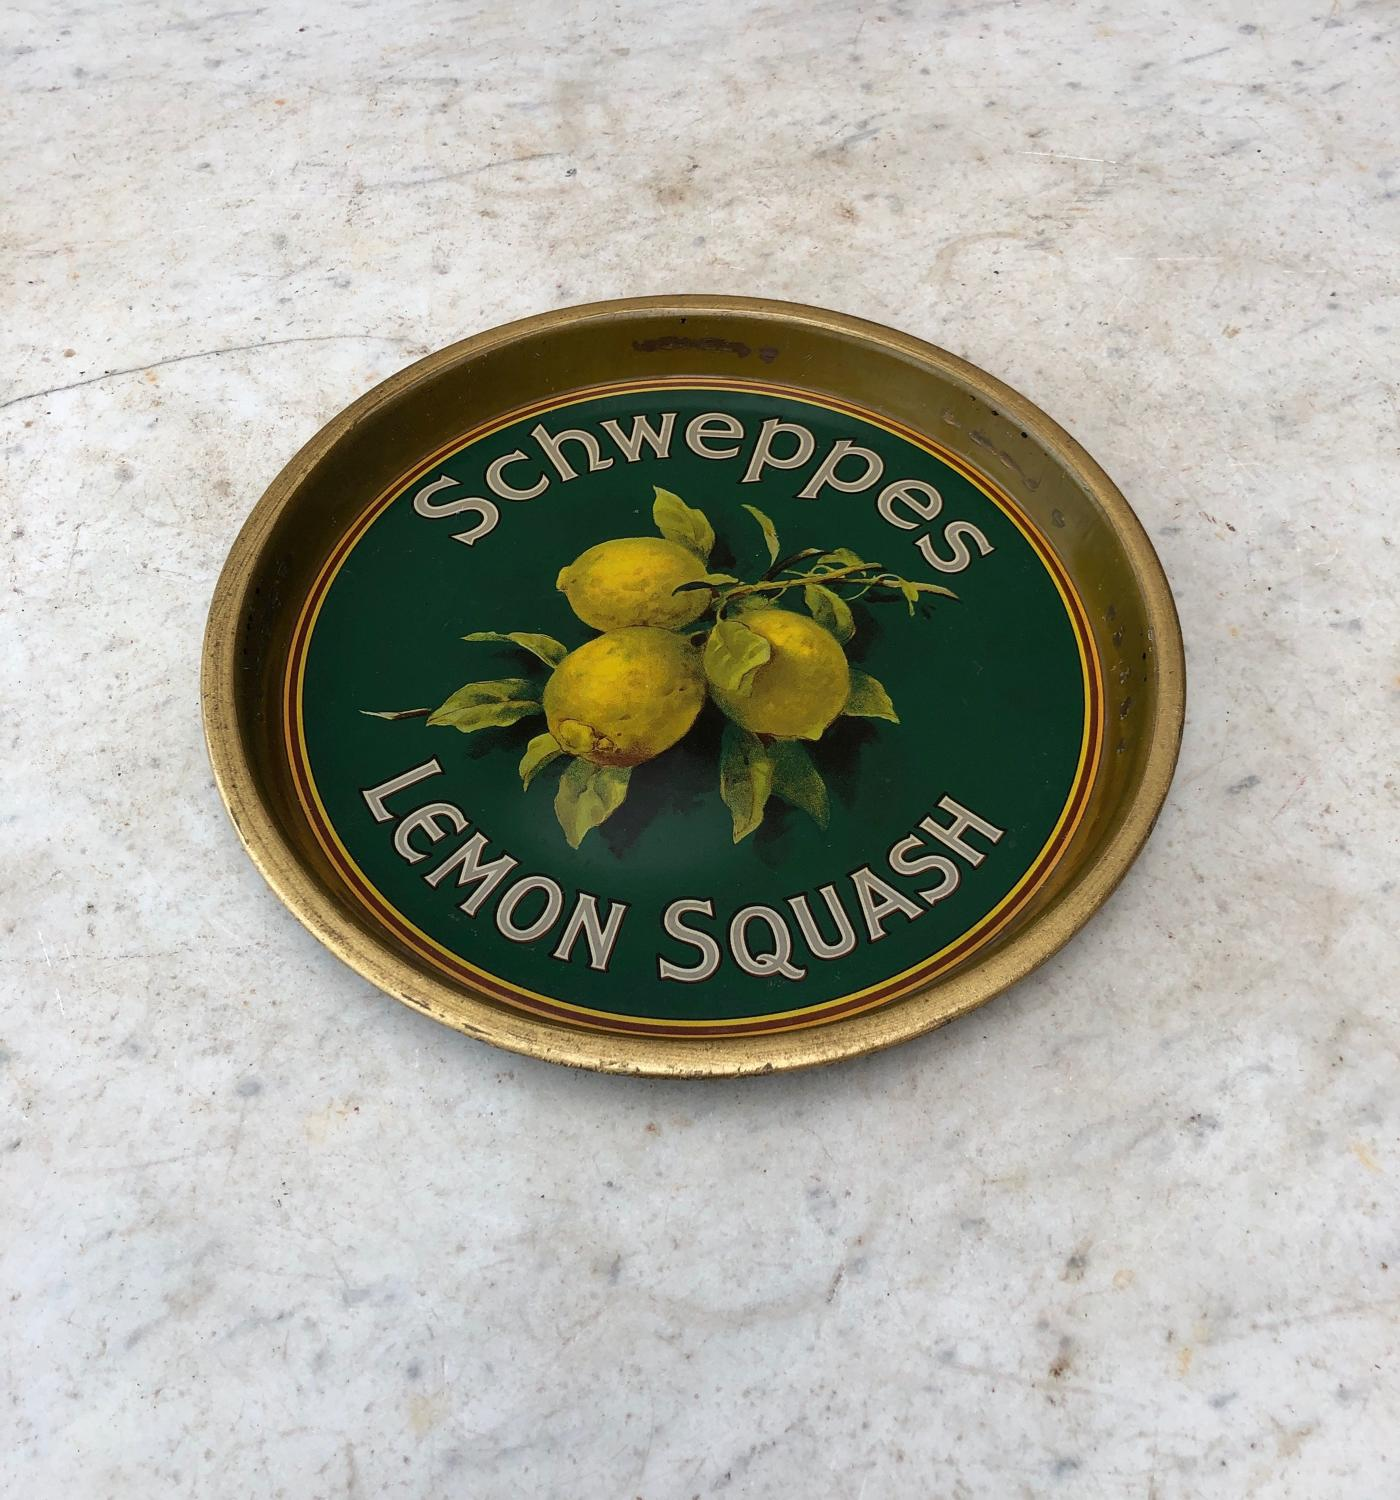 Wonderful 1930s Advertising Tray - Schwepps Lemon Squash